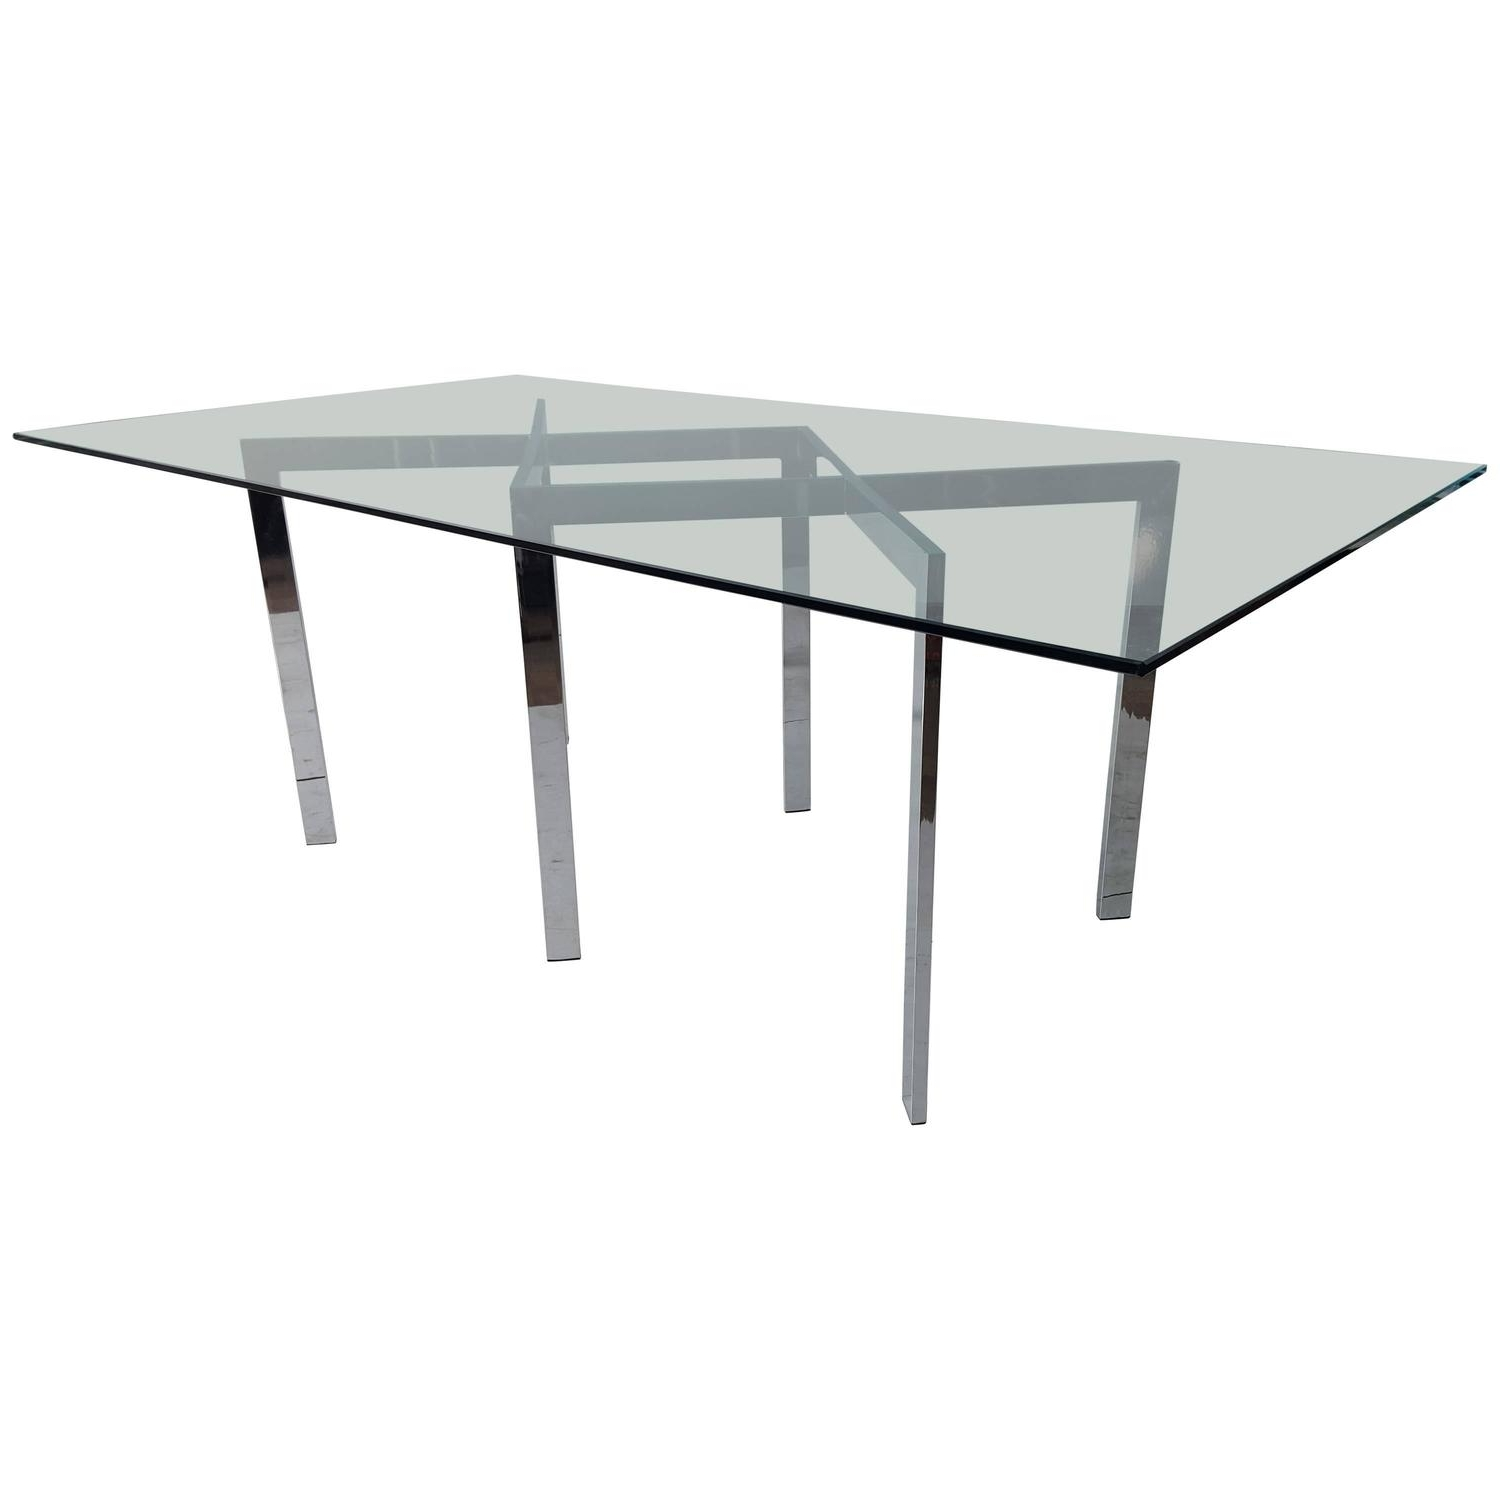 Milo Baughman, Thayer Coggin Chrome X Base And Glass Dining Table Inside Well Liked Chrome Glass Dining Tables (View 11 of 25)